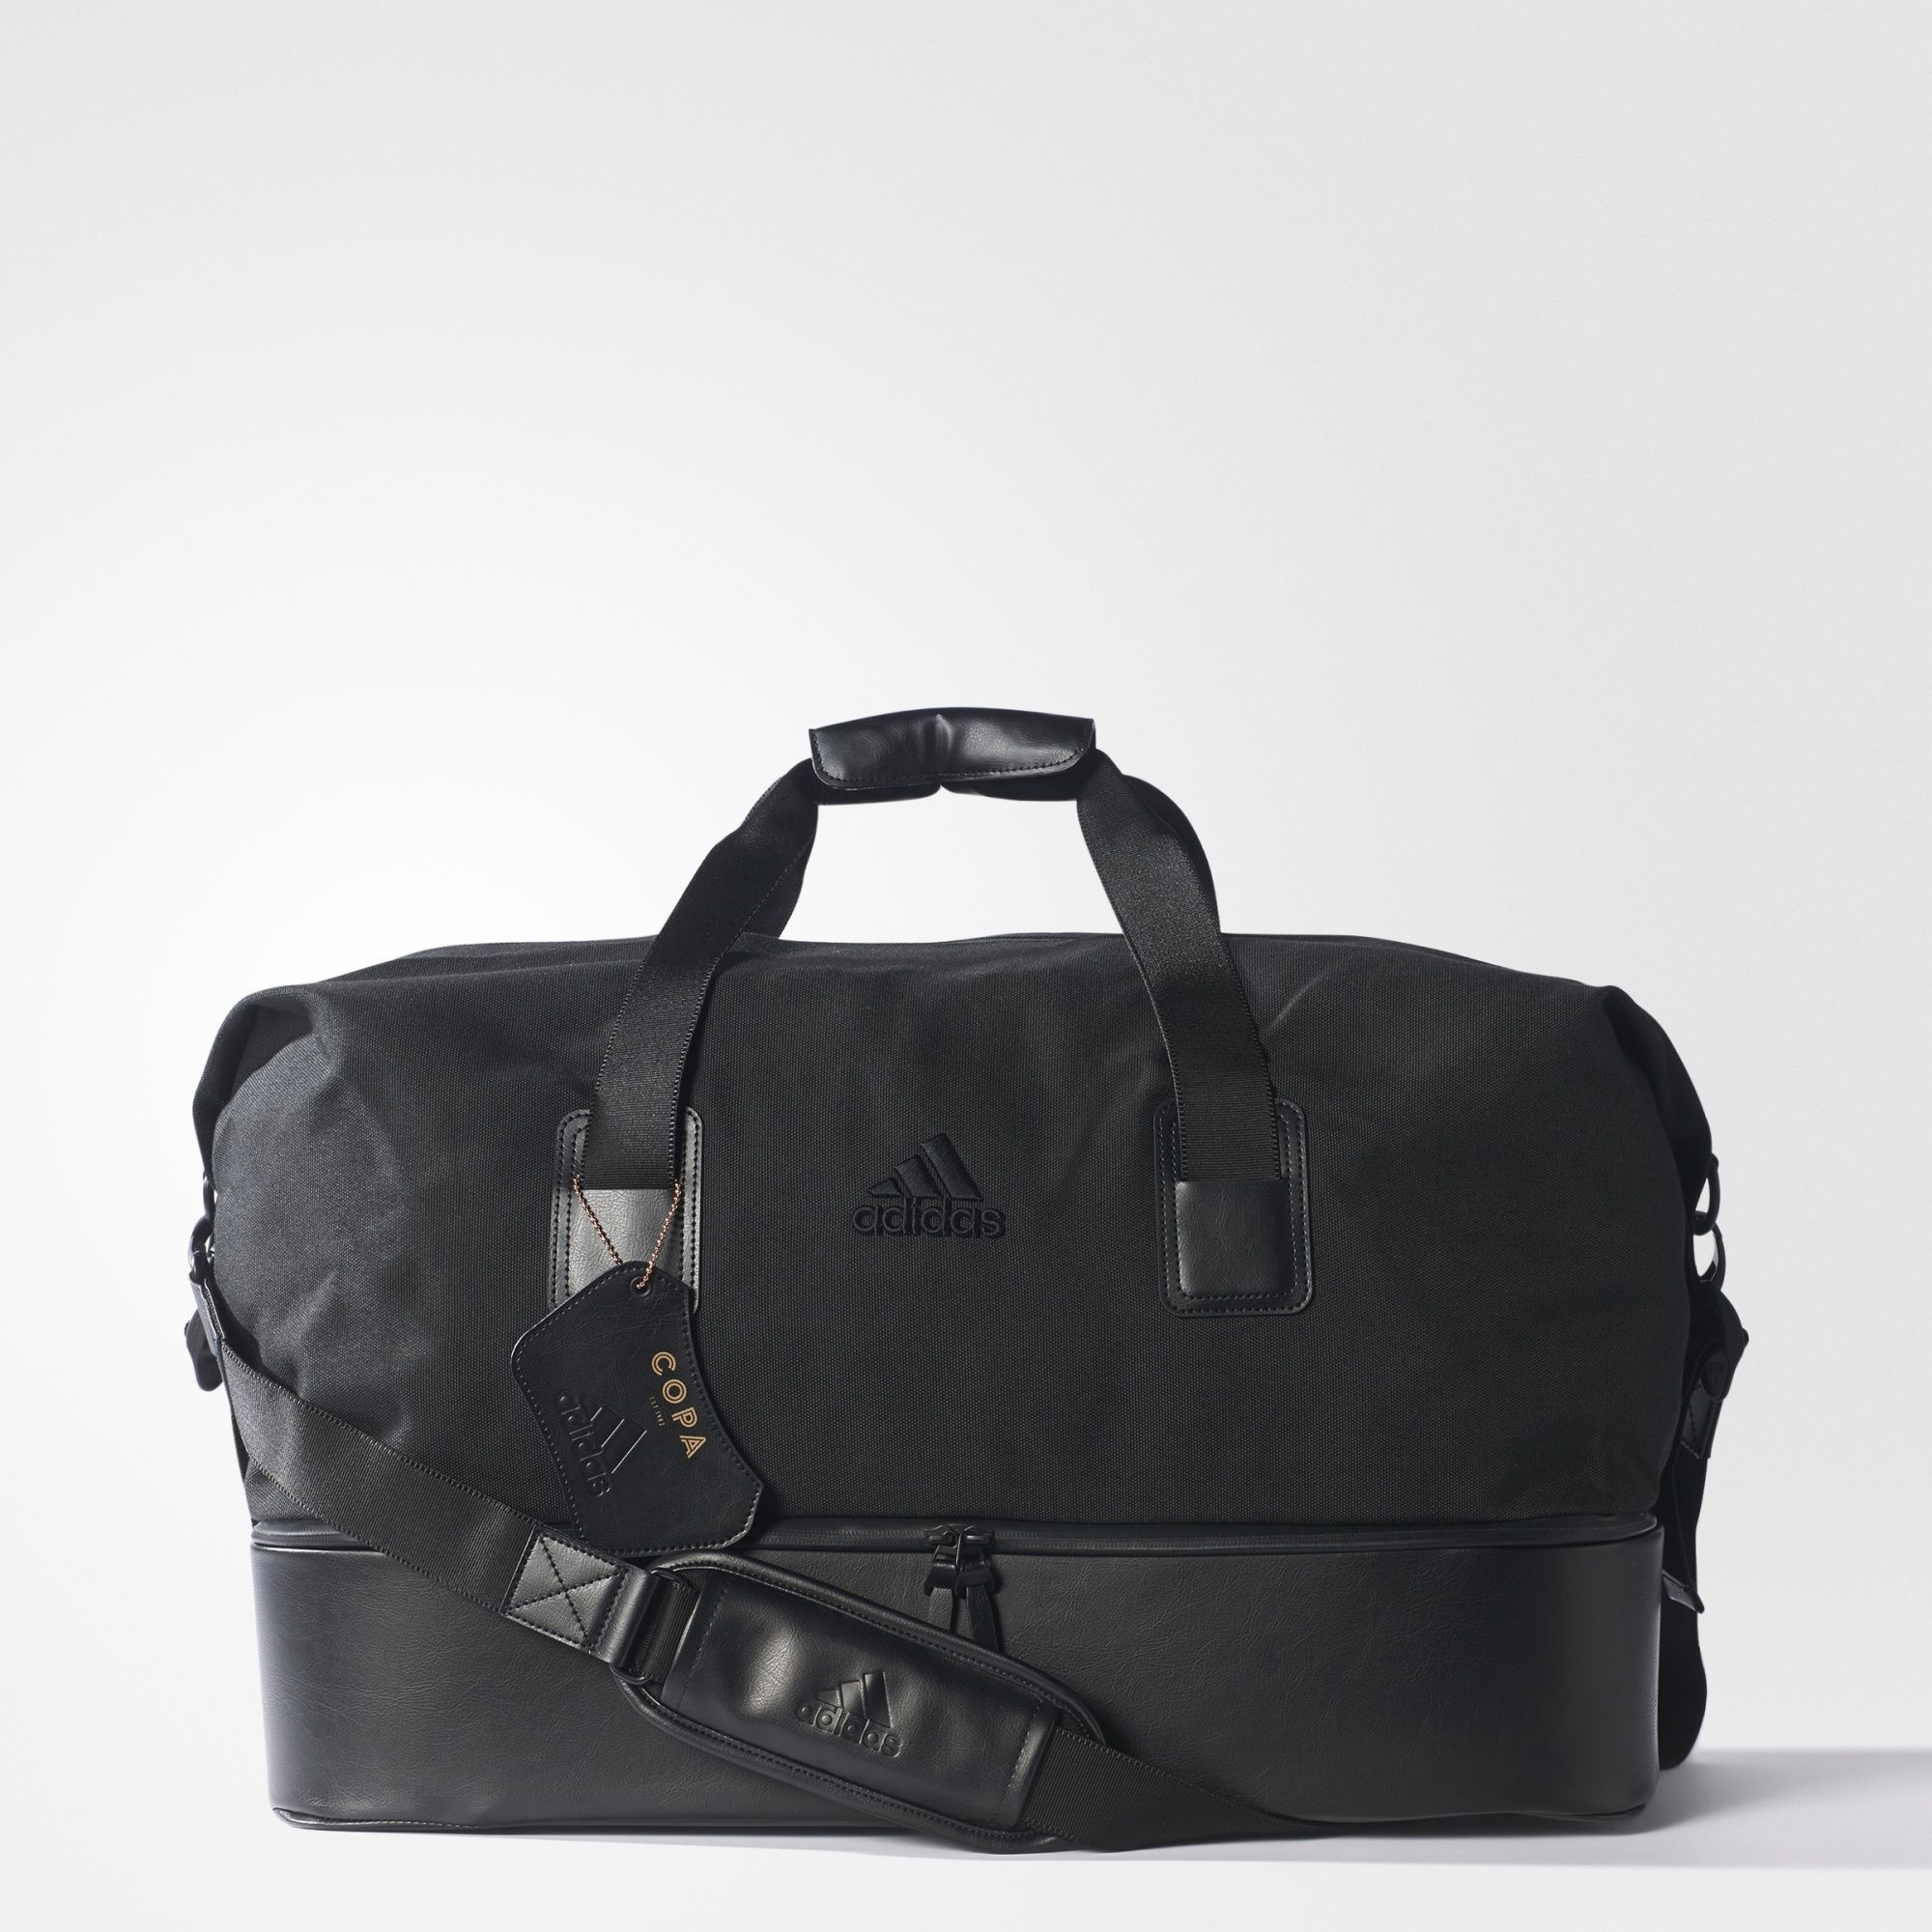 497bc71c33 Copa Icon Bag | Outdoors | Bags, Adidas, Black adidas